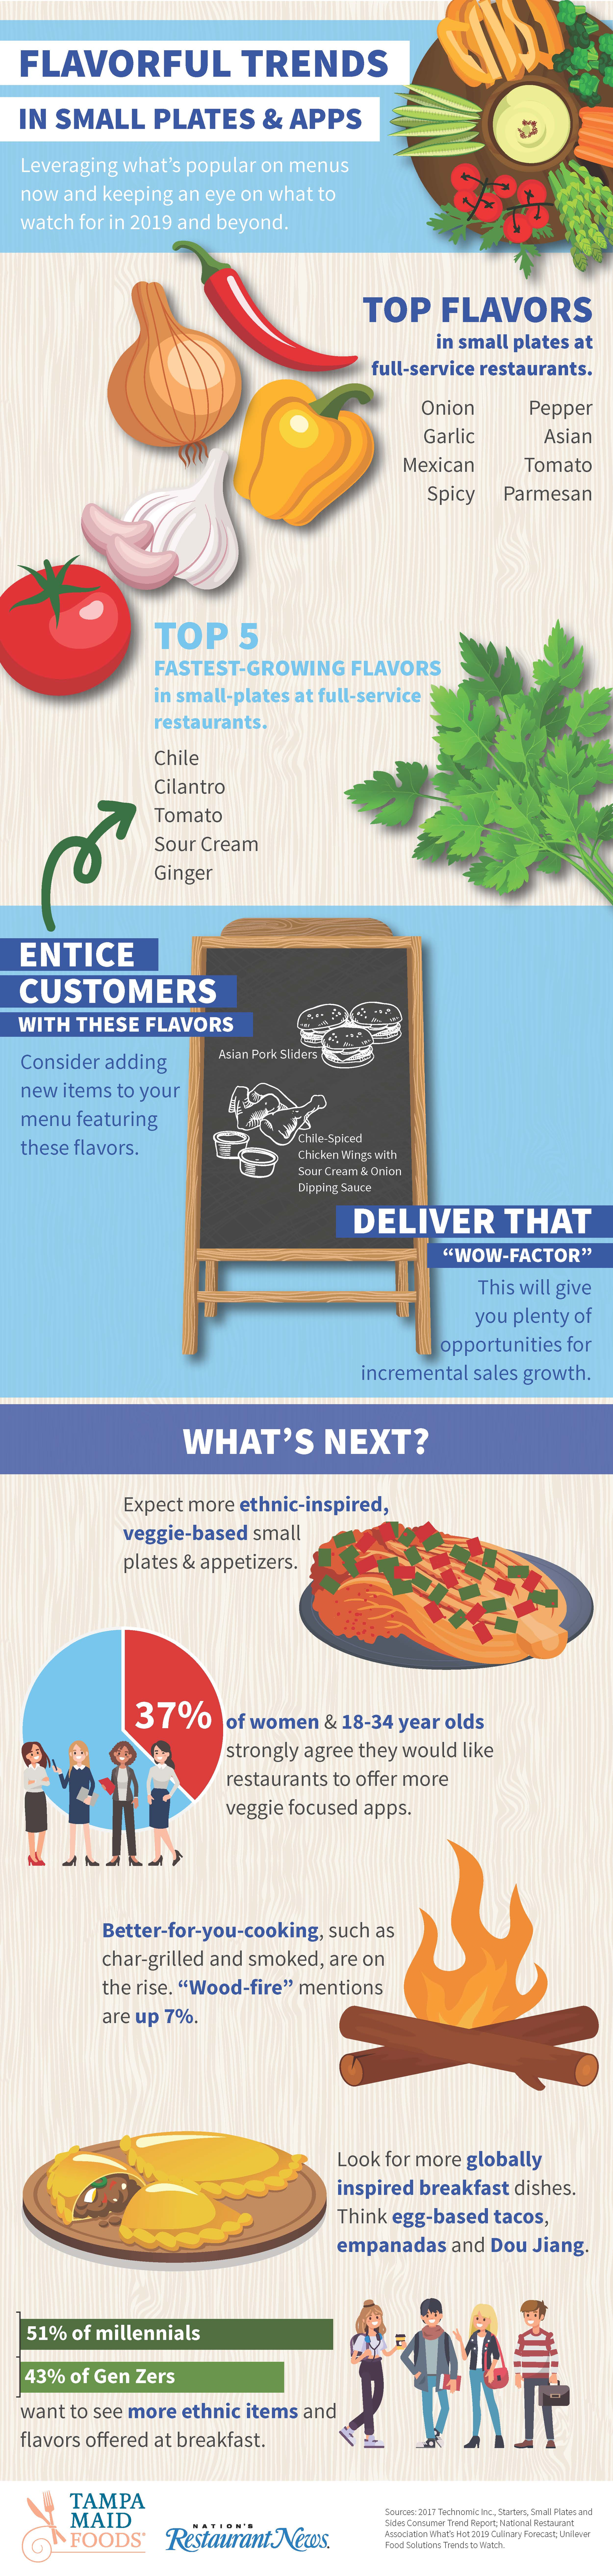 TampaMaid_Infographic_SmallPlates_v2_lowres